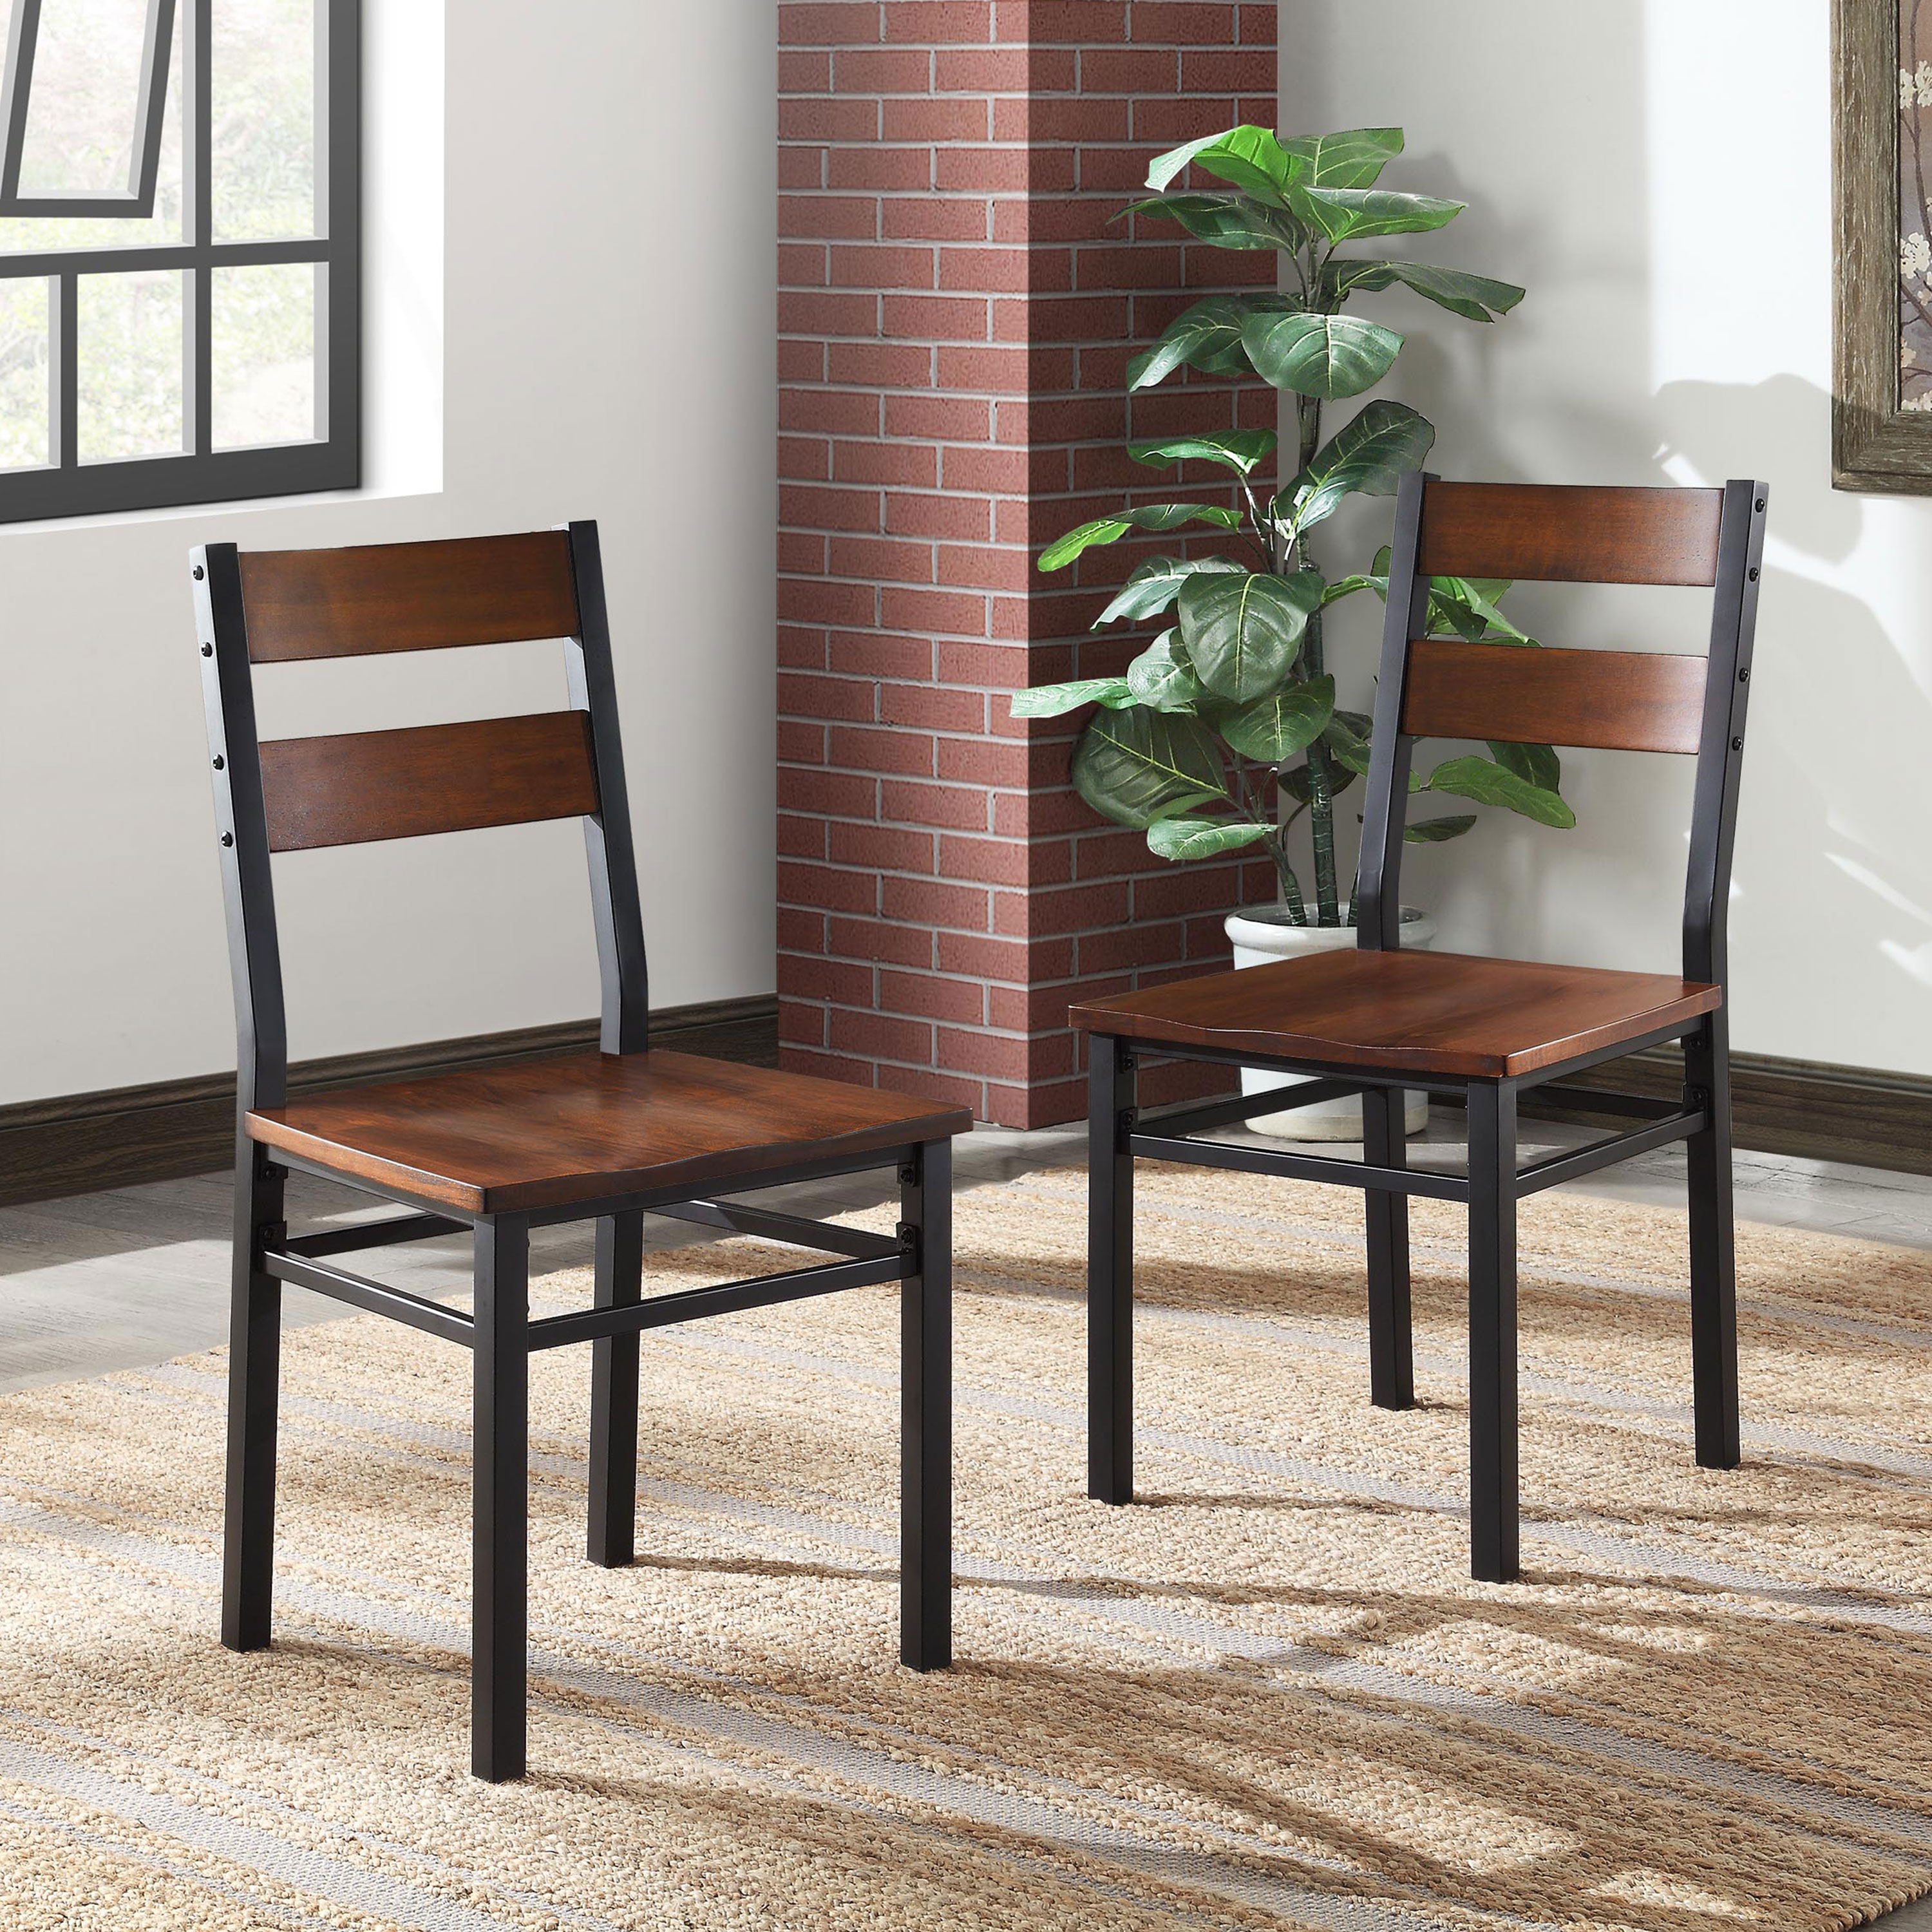 2017 Kitchen & Dining Furniture – Walmart For Moorehead 3 Piece Counter Height Dining Sets (Gallery 18 of 20)